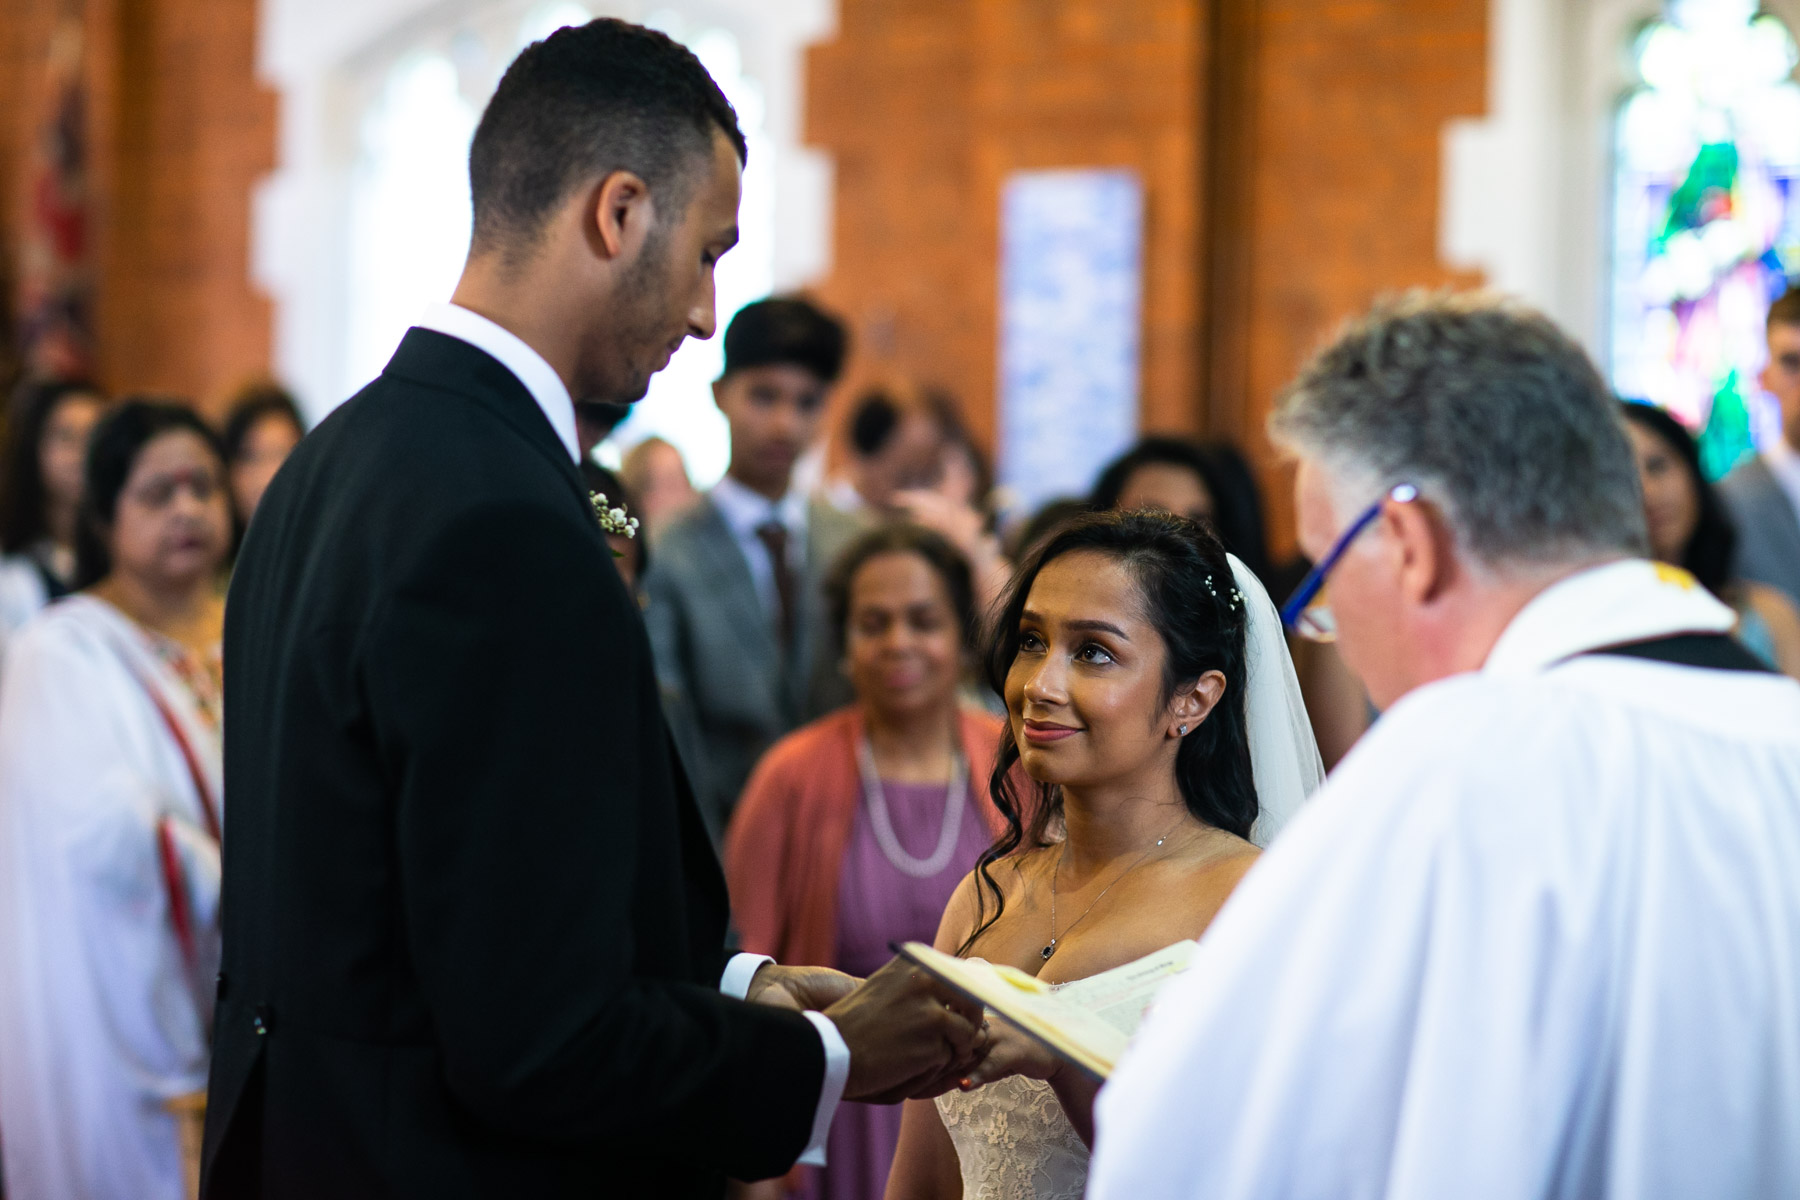 Stunning and relaxed bride and groom